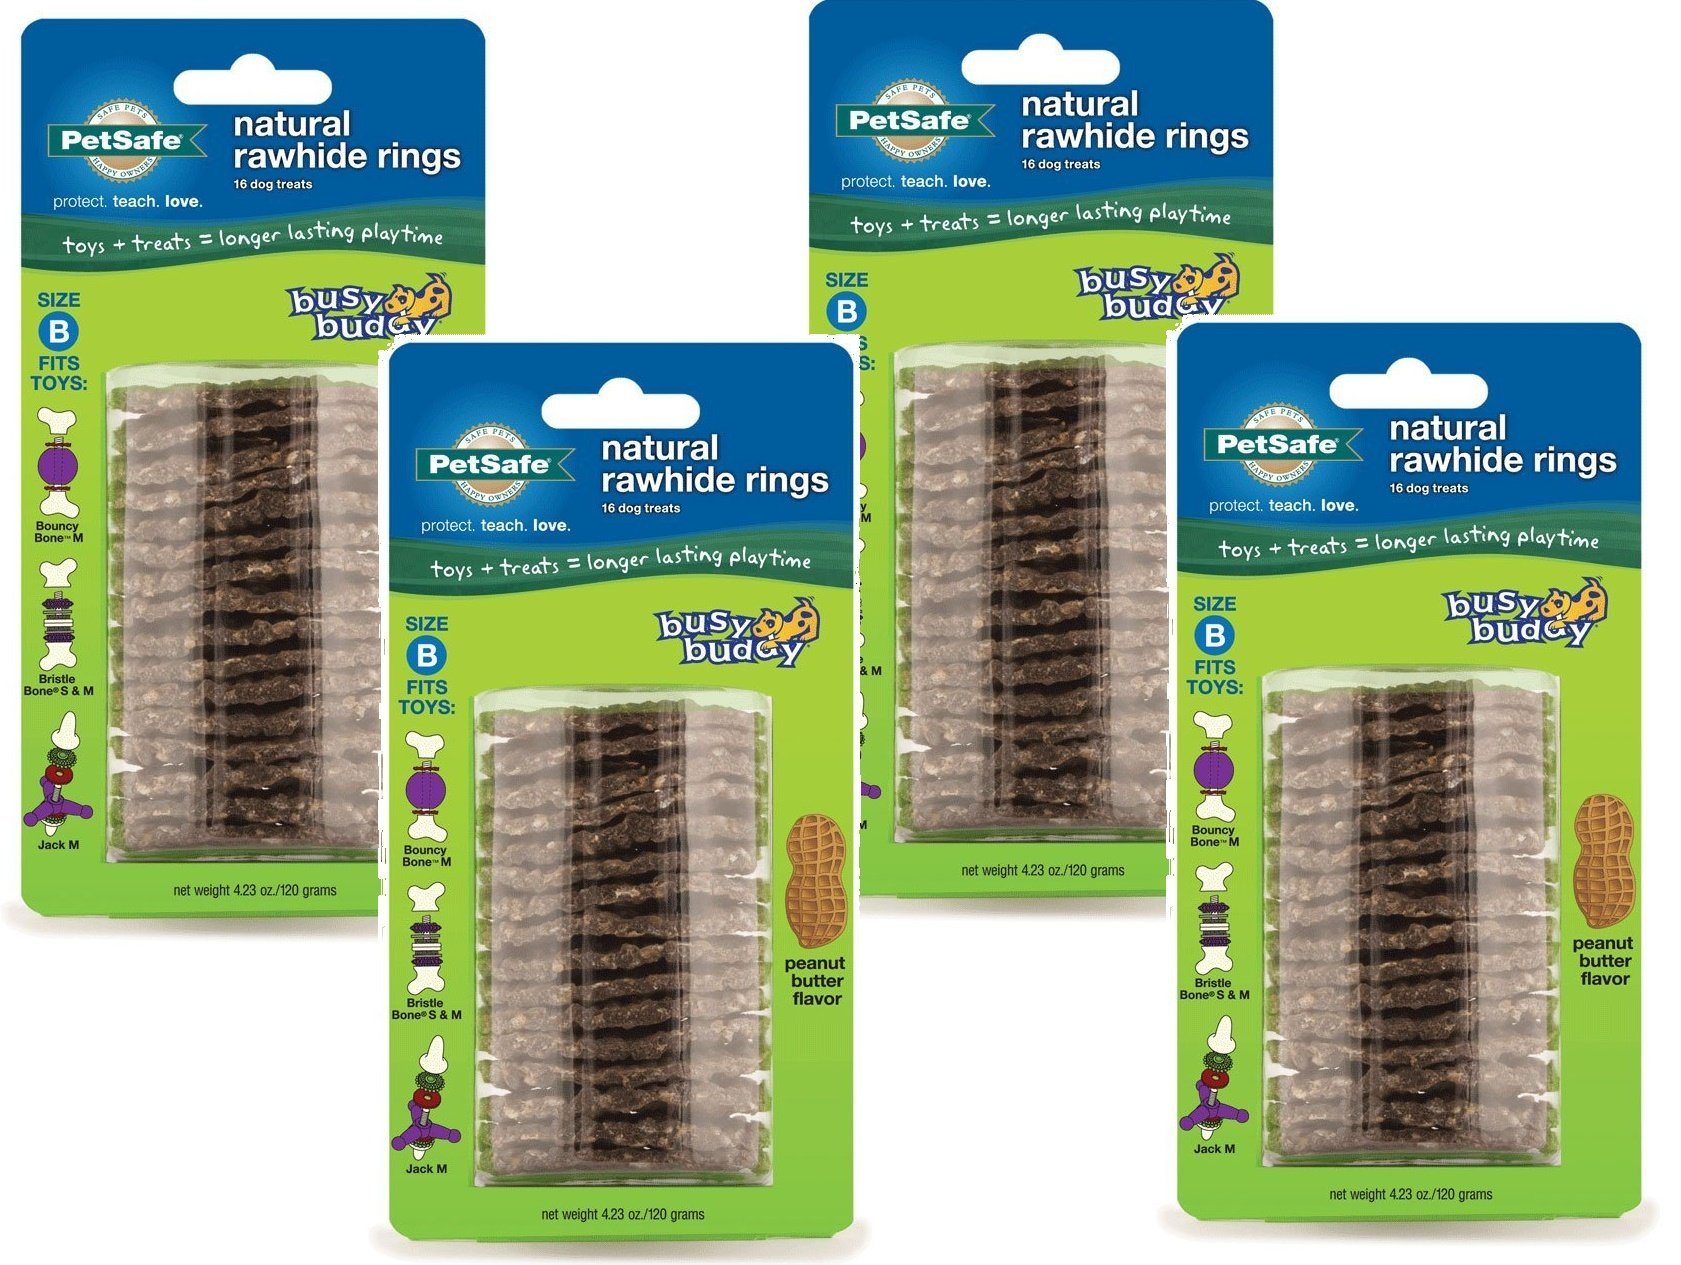 (4 Pack) PetSafe Busy Buddy Refill Ring Dog Treats for select Busy Buddy Dog Toys, Peanut Butter Flavored Natural Rawhide, Size B